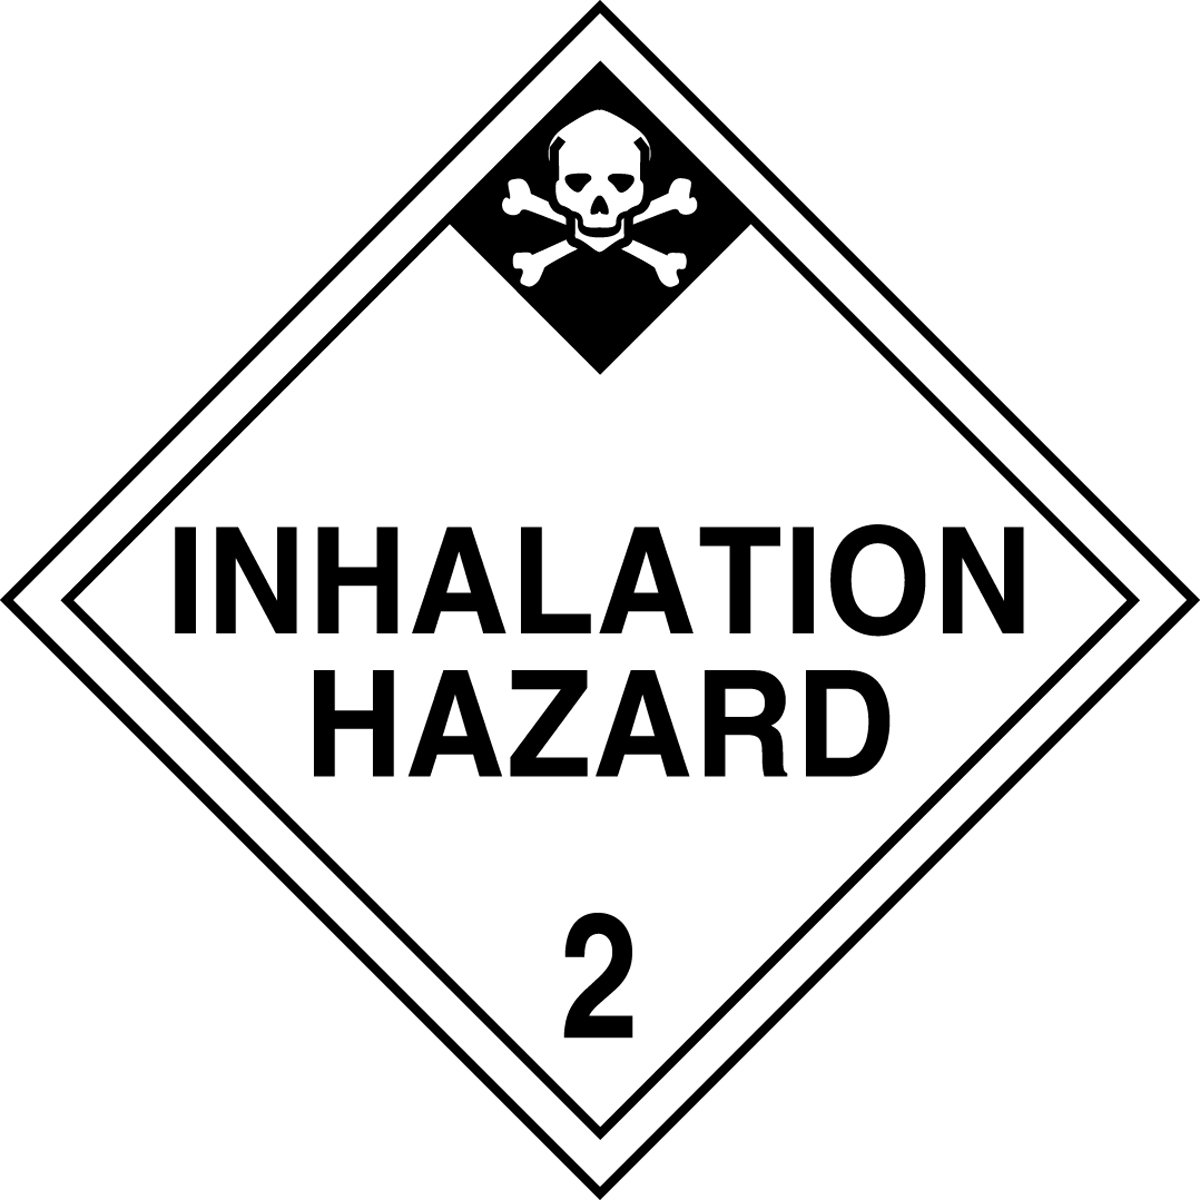 safety signs coloring pages - photo #17